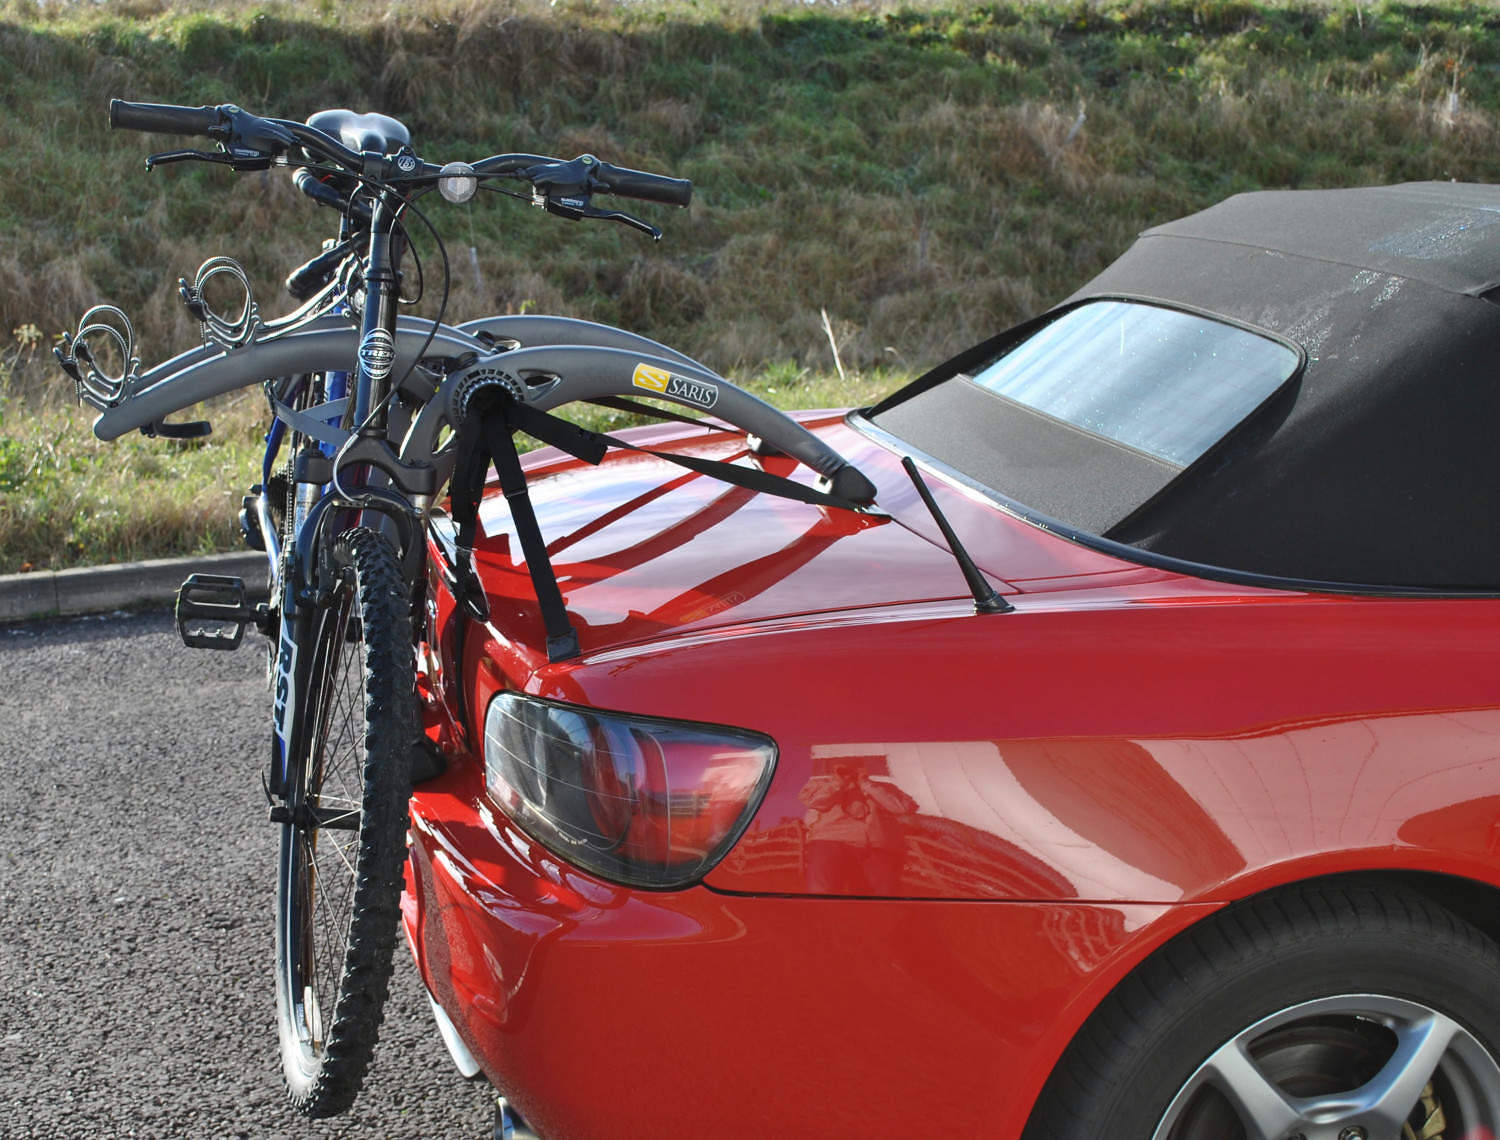 Honda S2000 Bike Rack Holds 2 Bikes Modern Arc Design